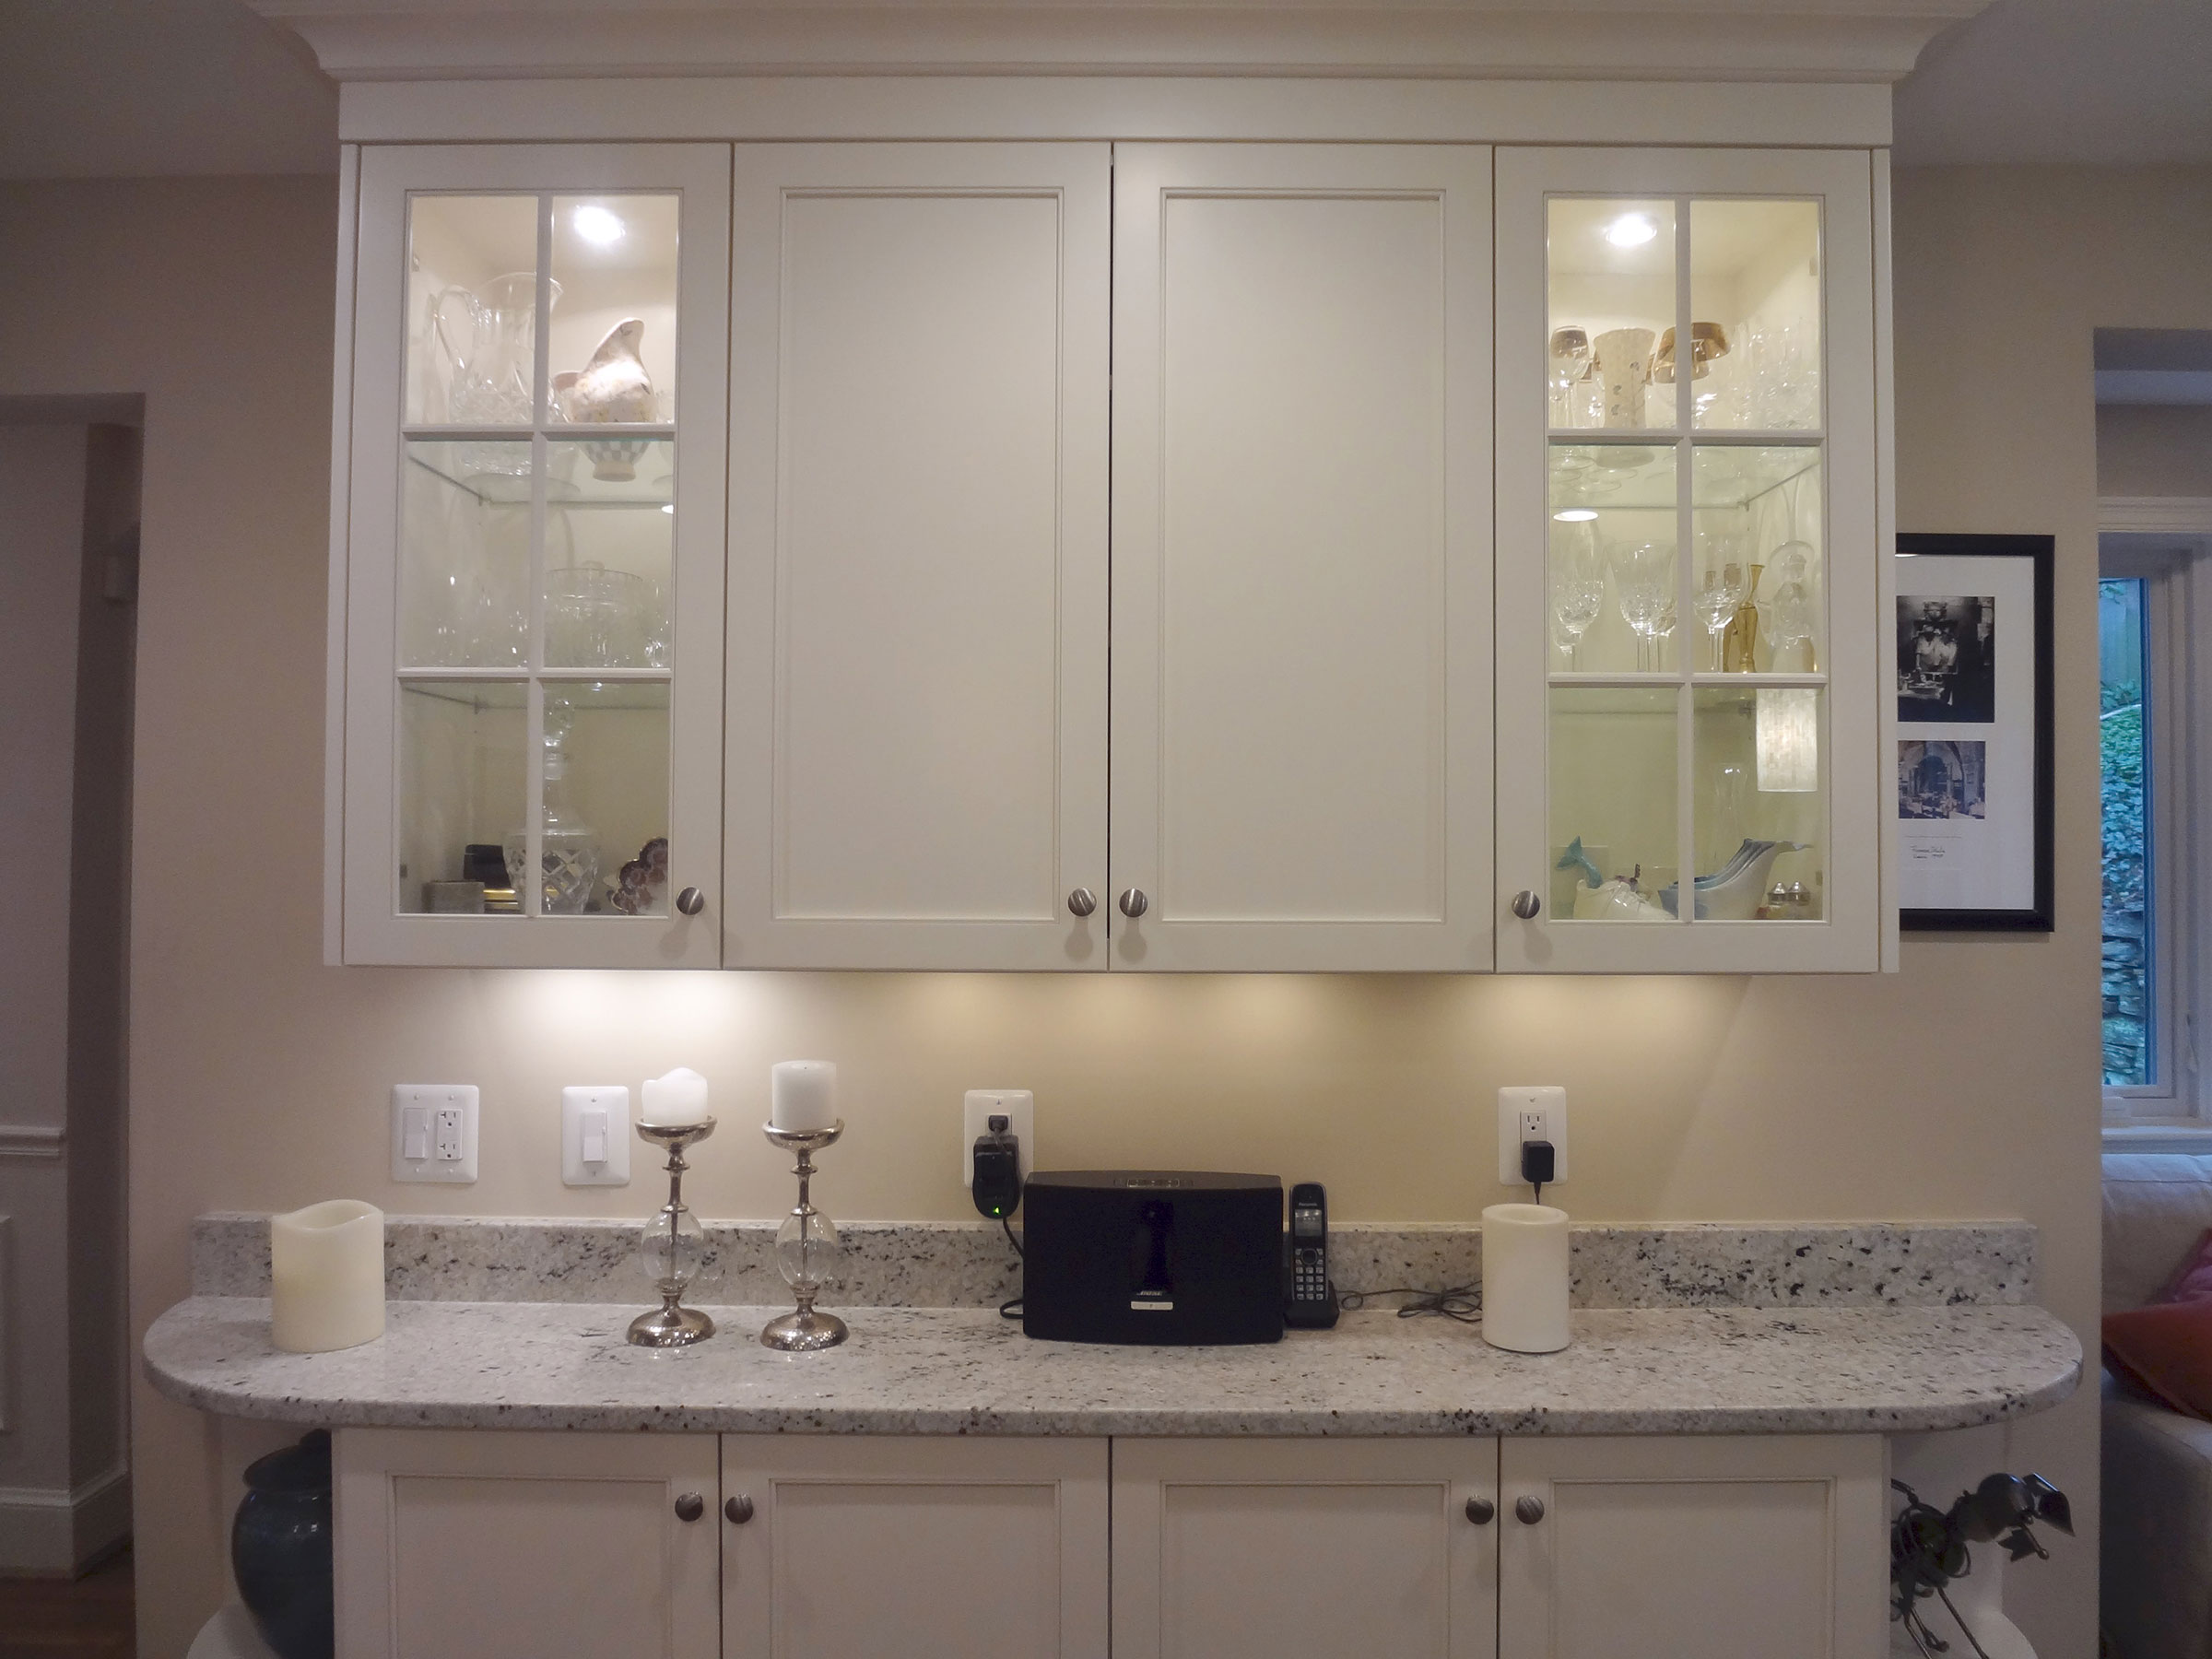 10-kitchen-glass-cabinets